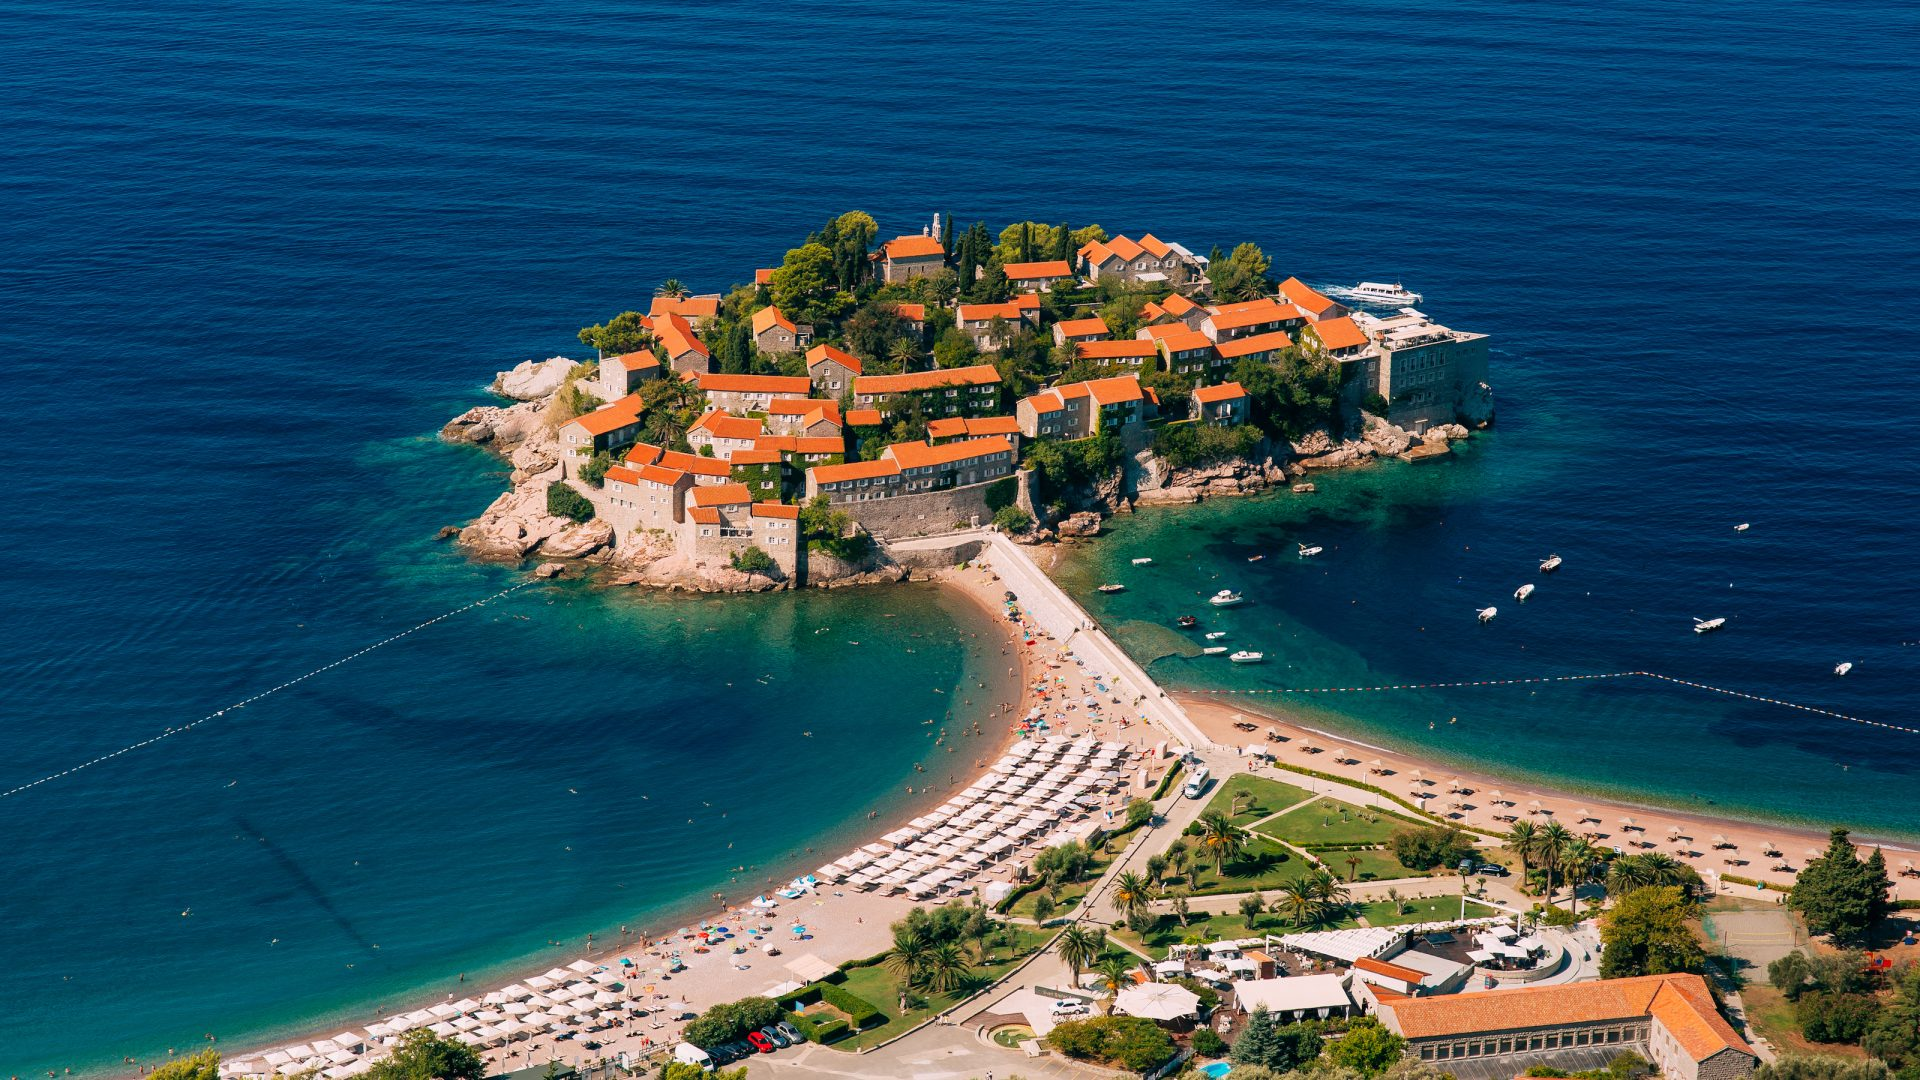 10 Awesome Places to Visit in Montenegro in 2019 | Tripfore